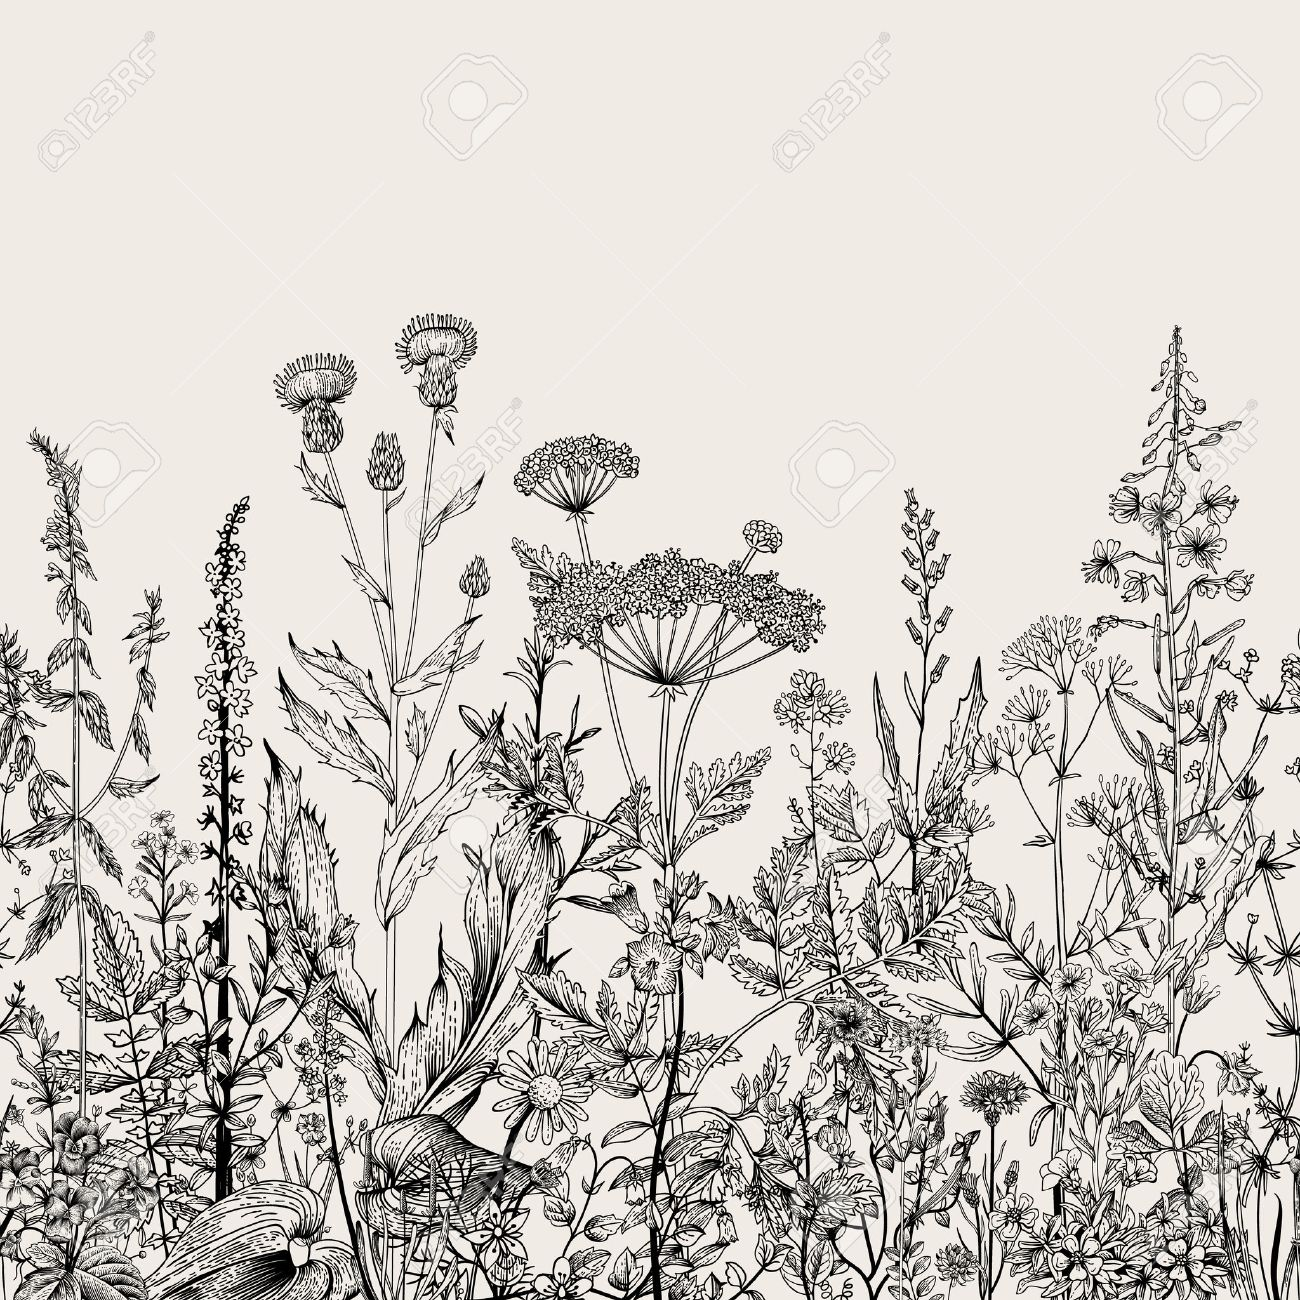 Vector seamless floral border. Herbs and wild flowers. Botanical Illustration engraving style. Black and white - 52411609